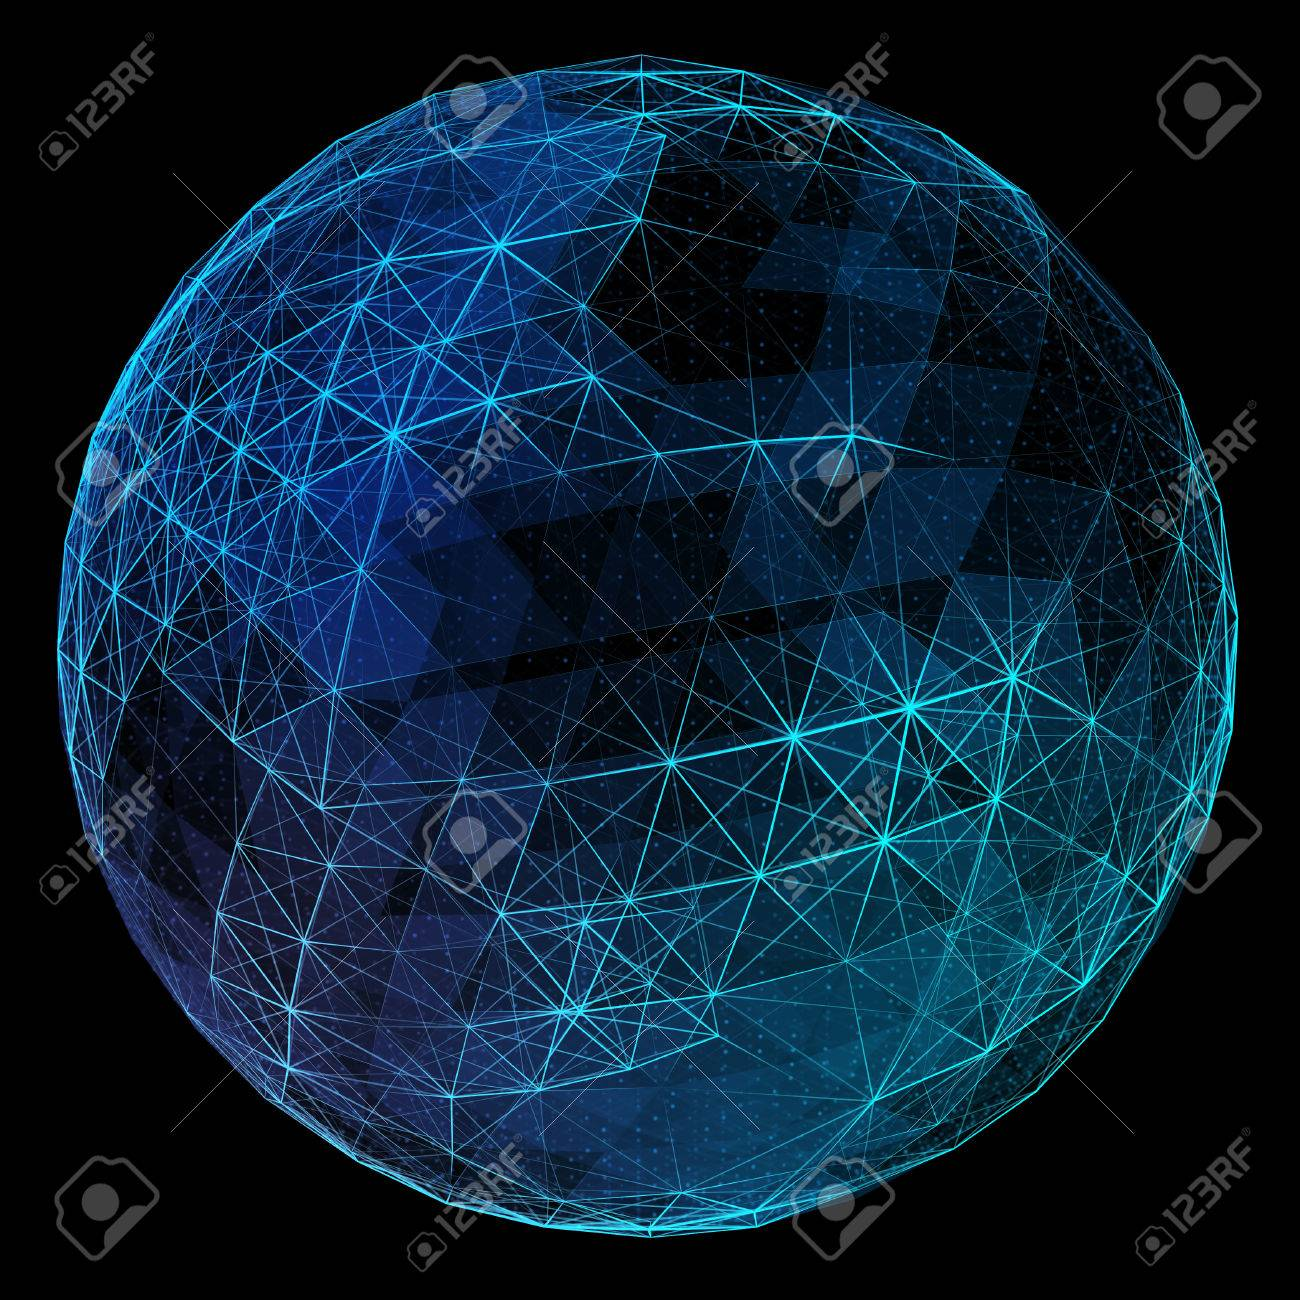 Abstract blue network globe. Technology concept of global communication. - 44363183